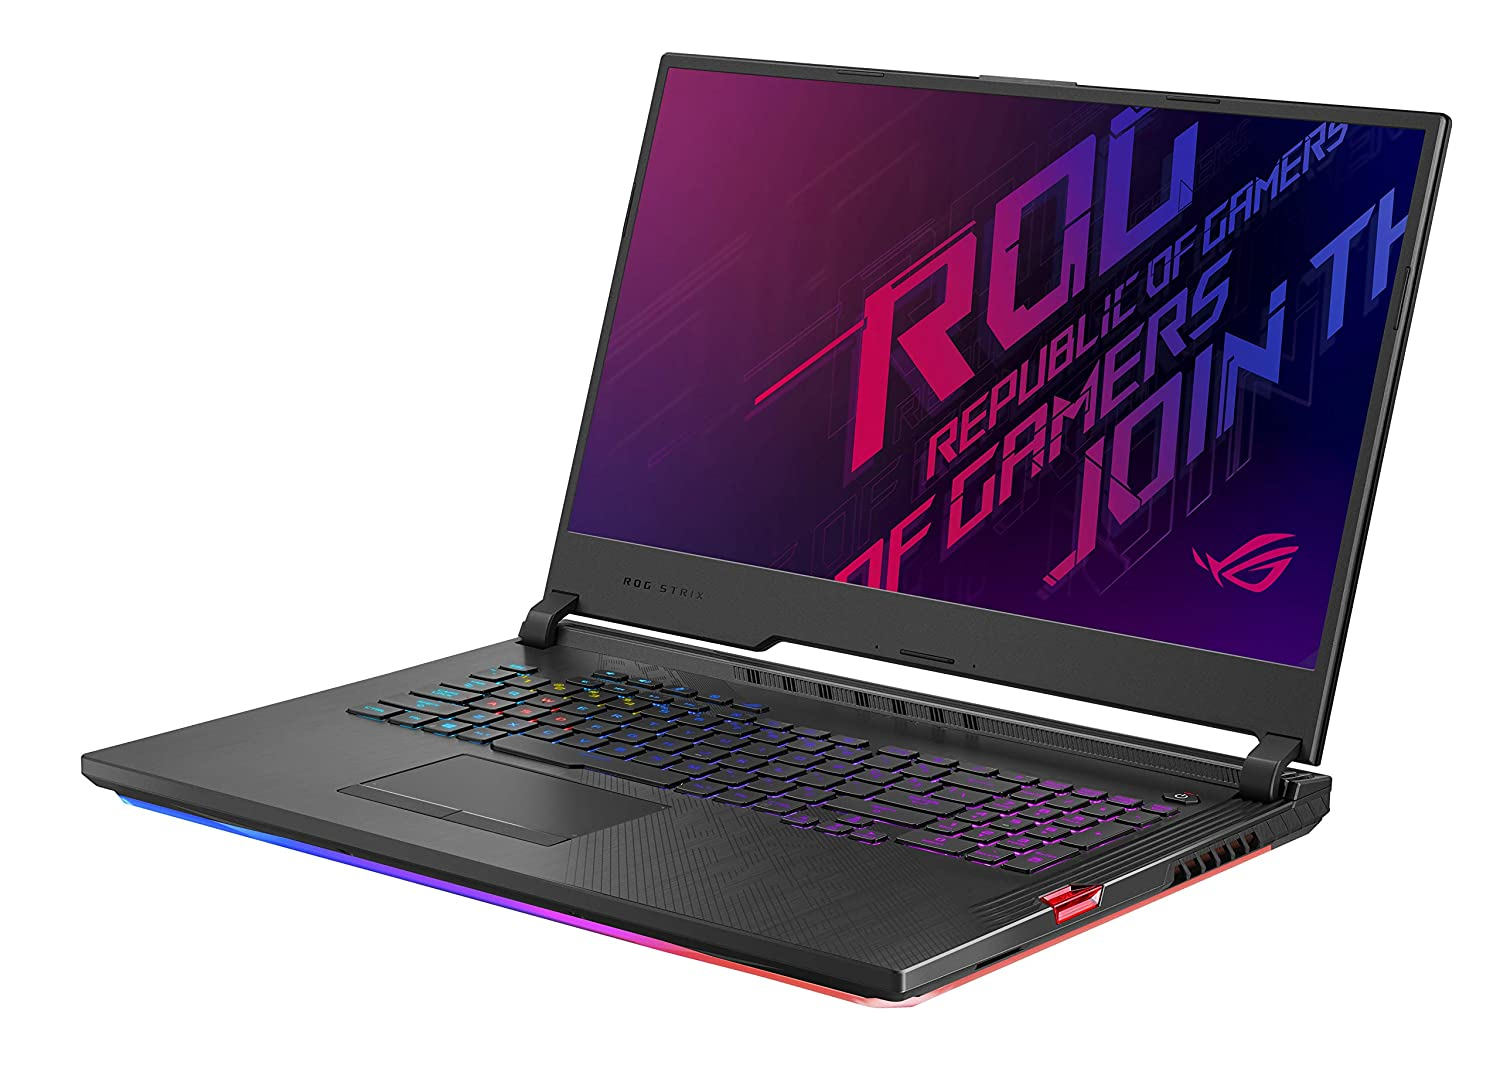 Asus ROG Strix Hero III 2019 Gaming Laptop, 17.3 144Hz IPS Type FHD, NVIDIA GeForce RTX 2060, Intel Core i7-9750H, 16GB DDR4 RAM, 512GB PCIe Nvme SSD, Per-Key RGB KB, Windows 10 Home, G731GV-DB74